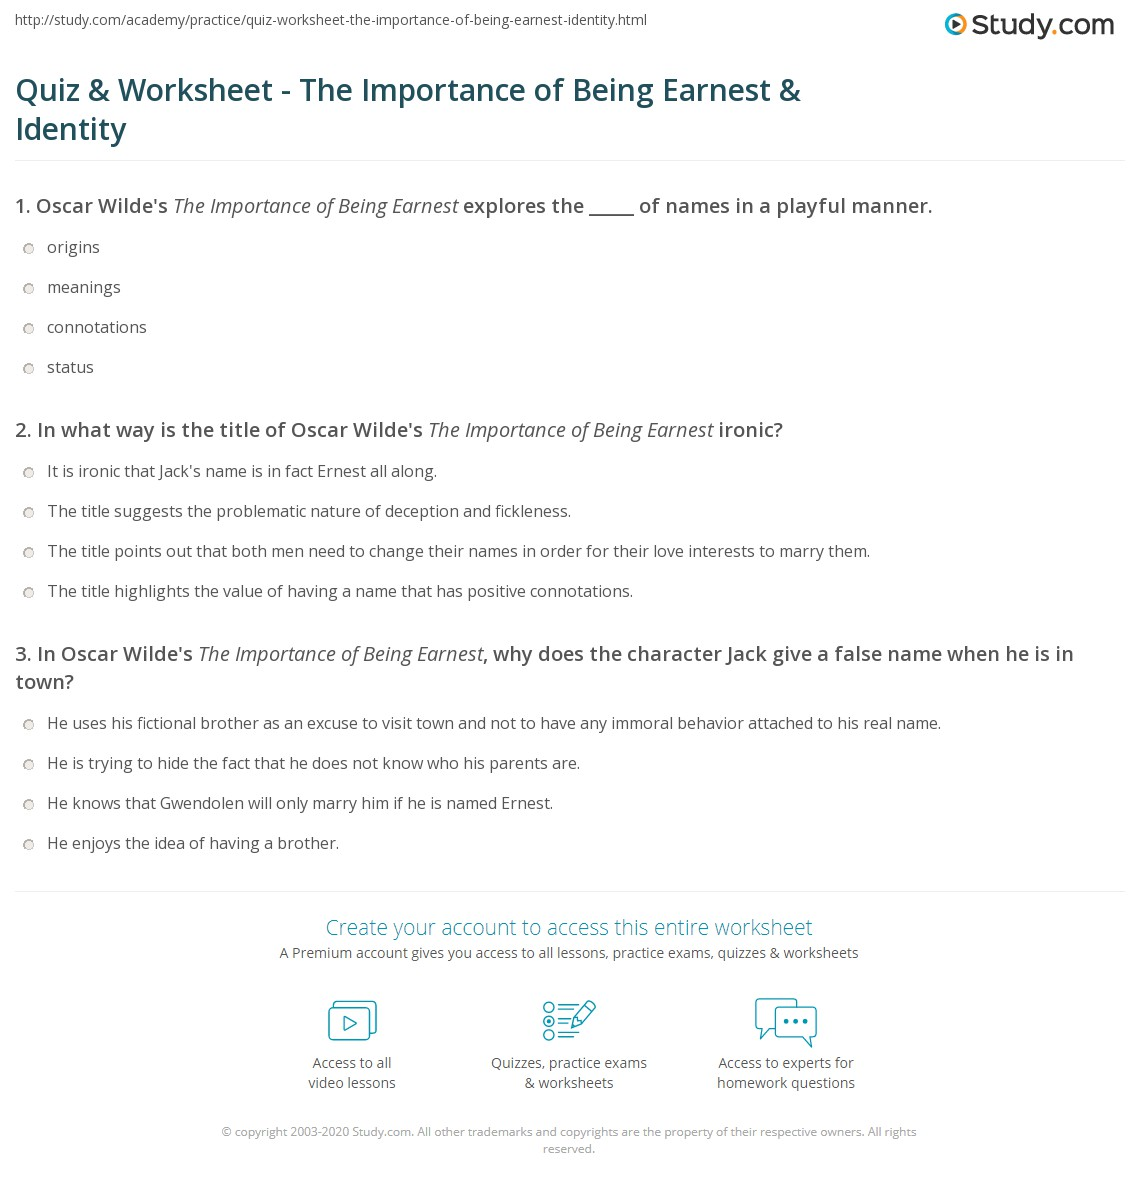 Quiz Worksheet The Importance Of Being Earnest Identity